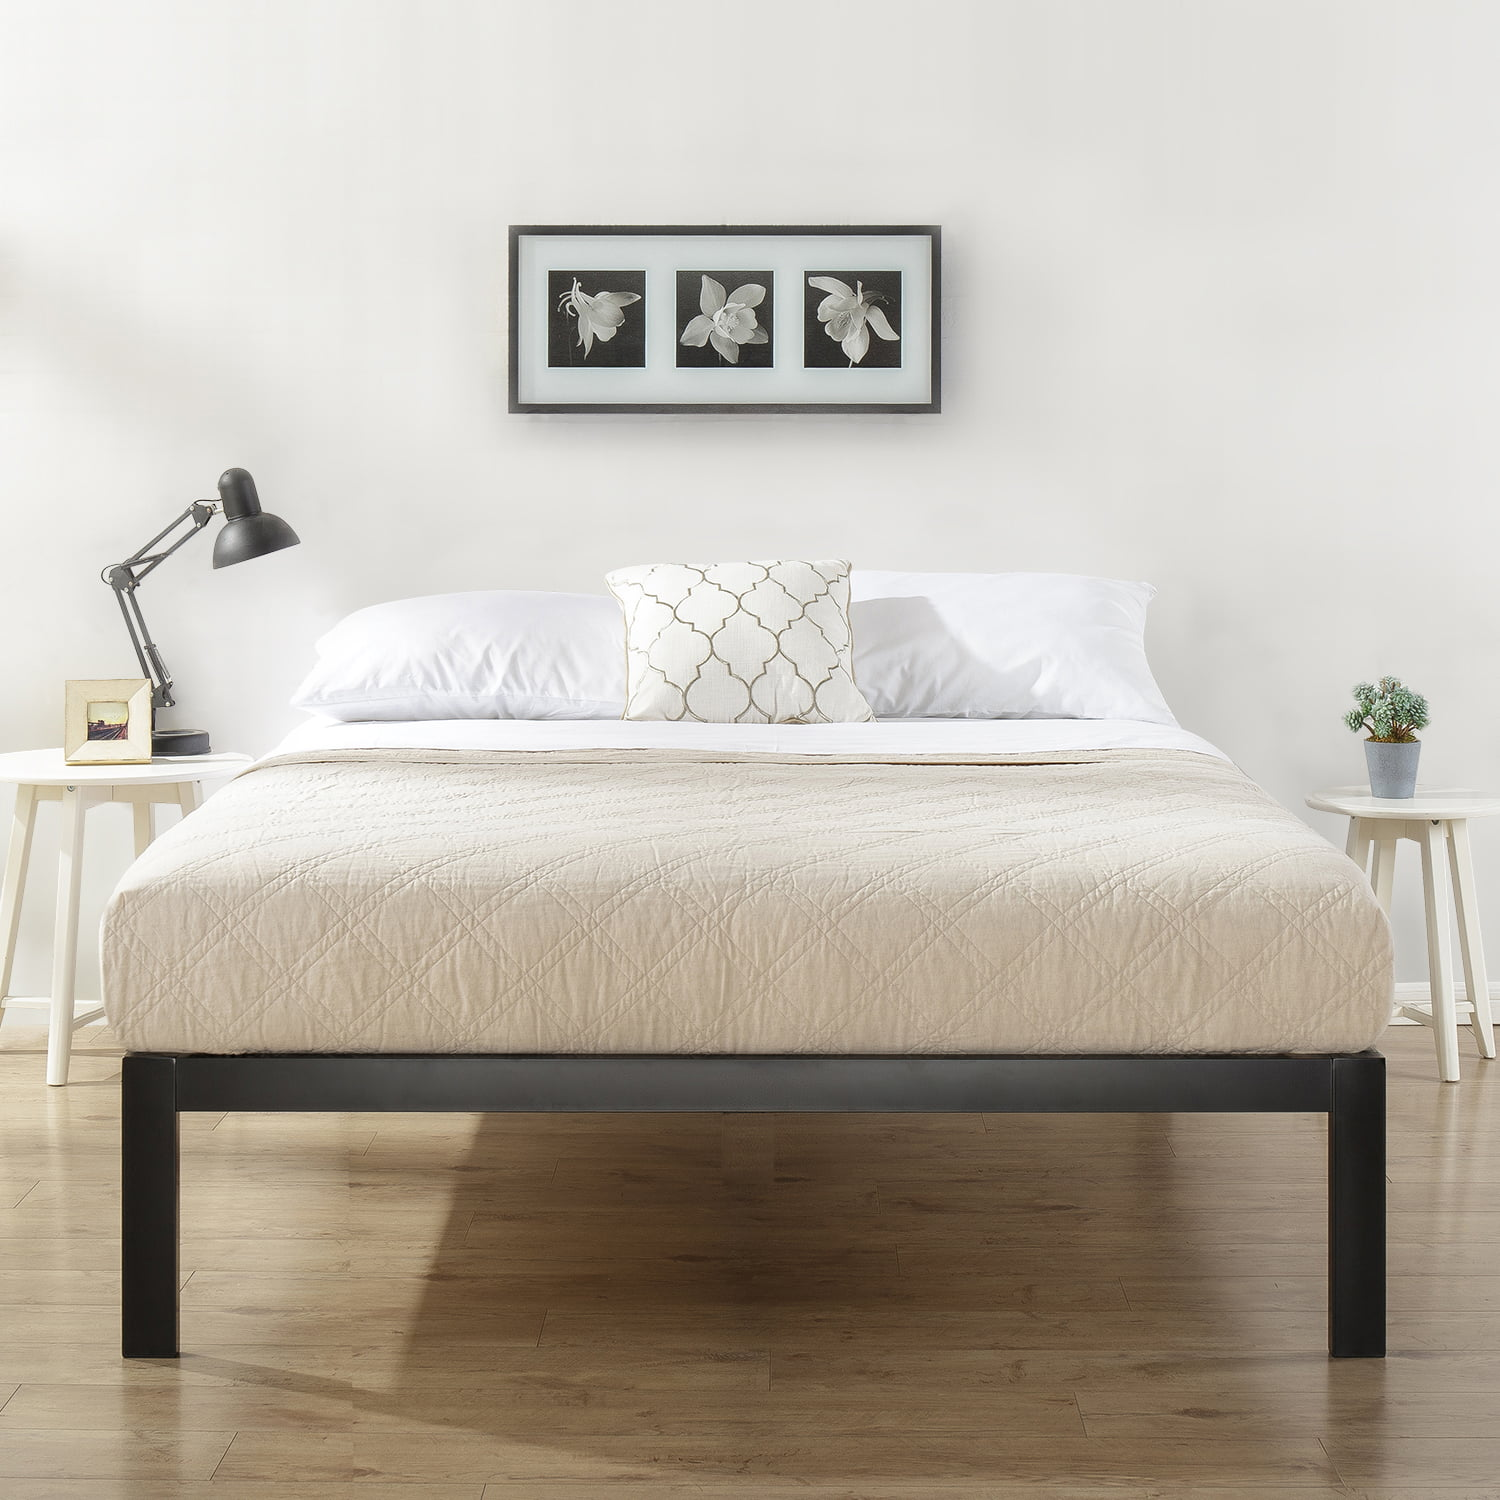 Mainstays Metal Platform Bed Frame, Multiple Sizes by Zinus Inc